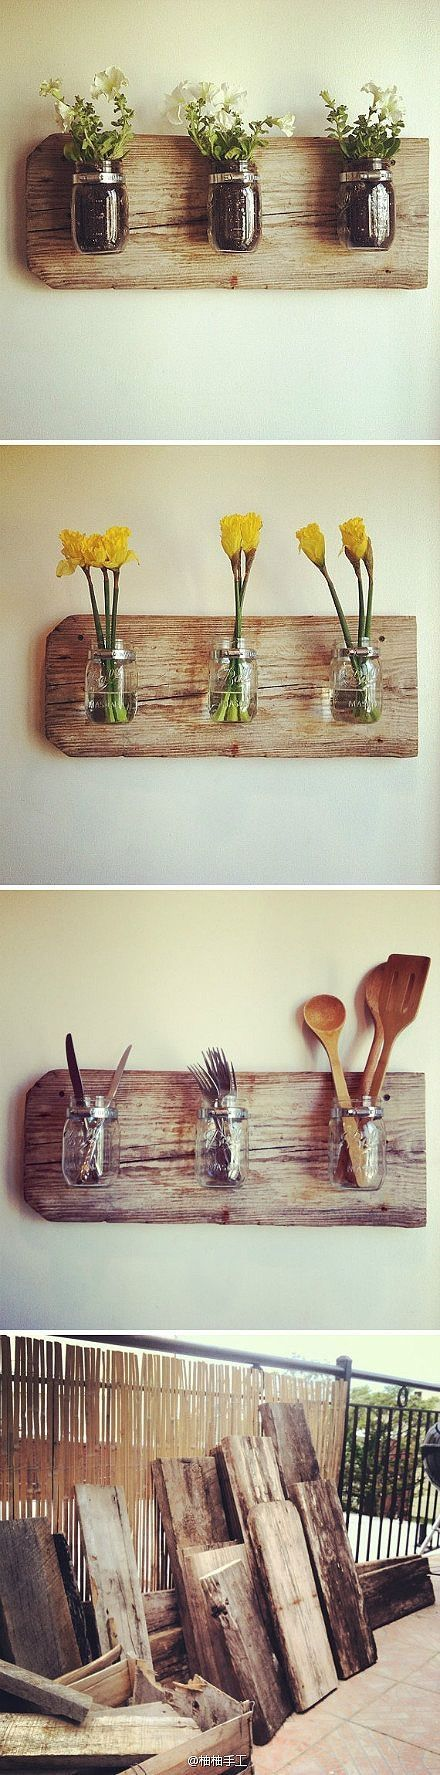 Mason Jar Wall Holder